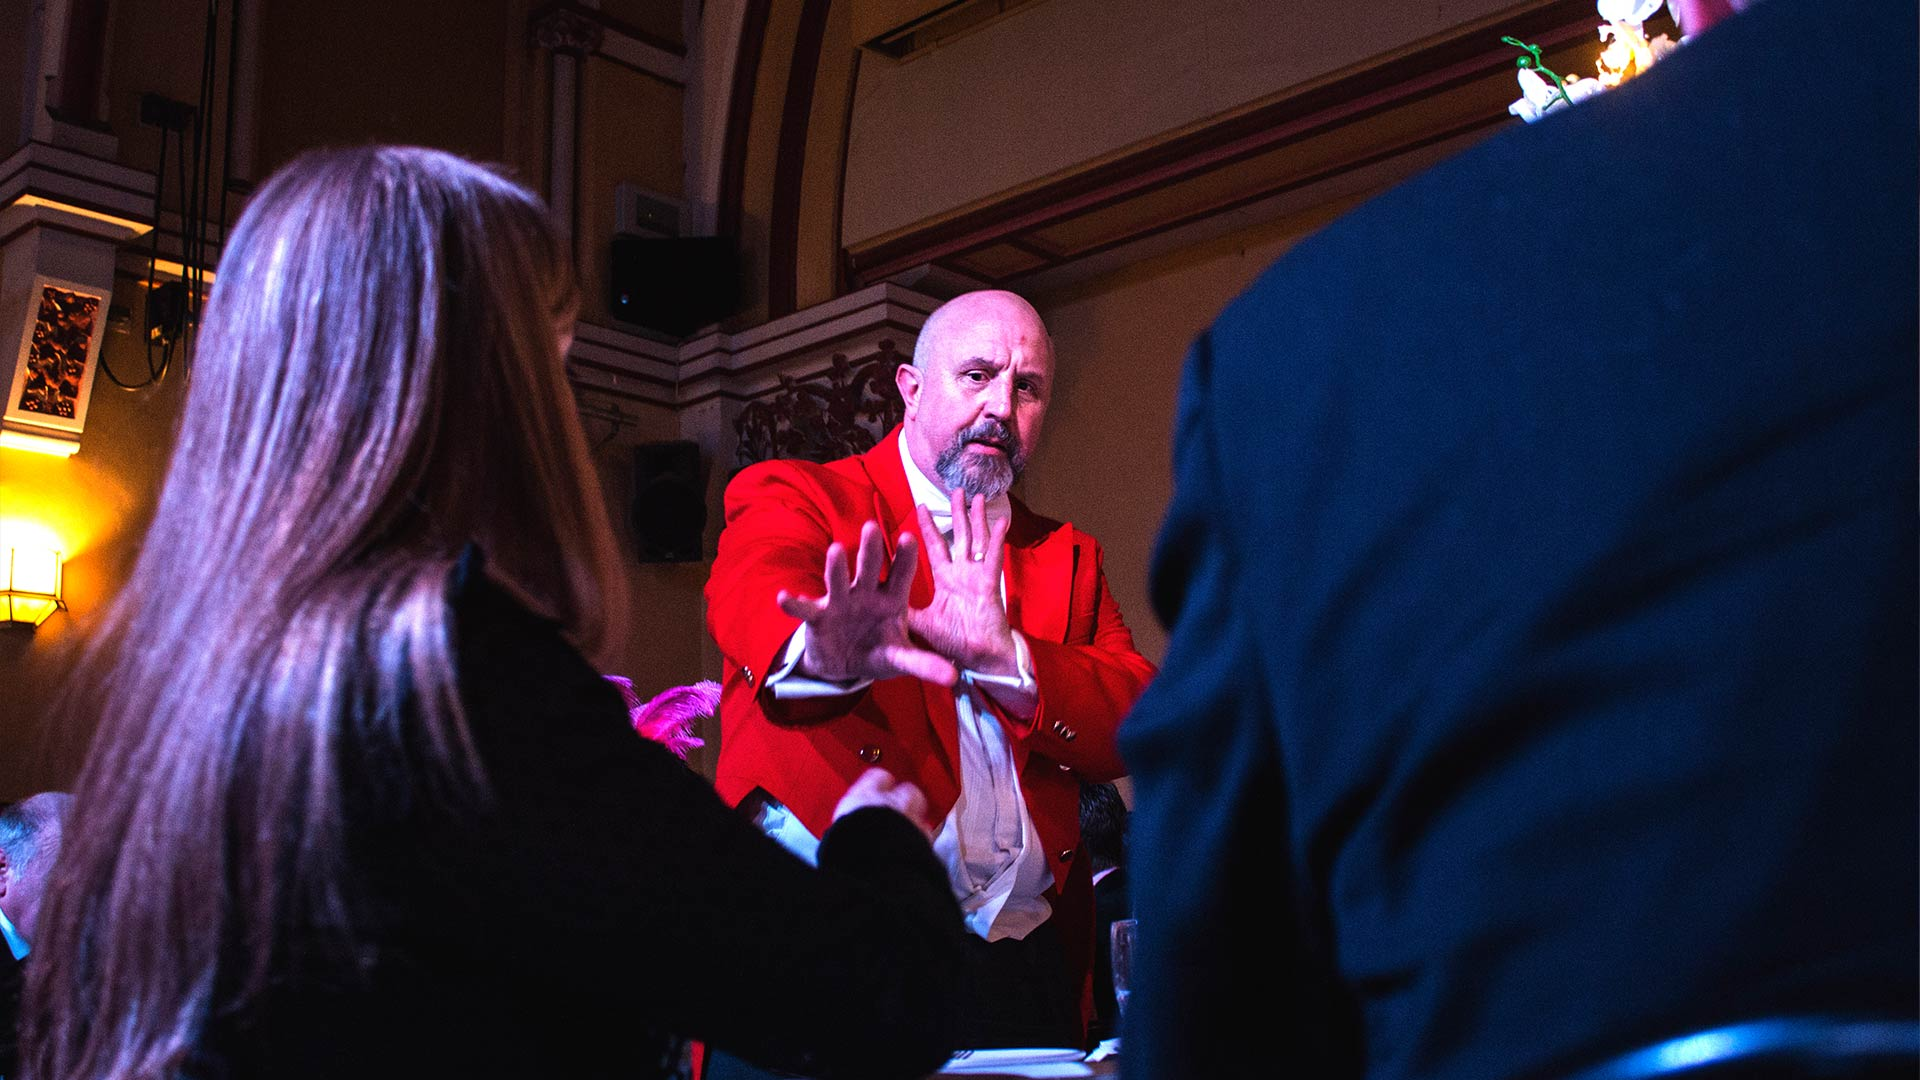 The Great Baldini, Bath Magician, delights and entertains guests.